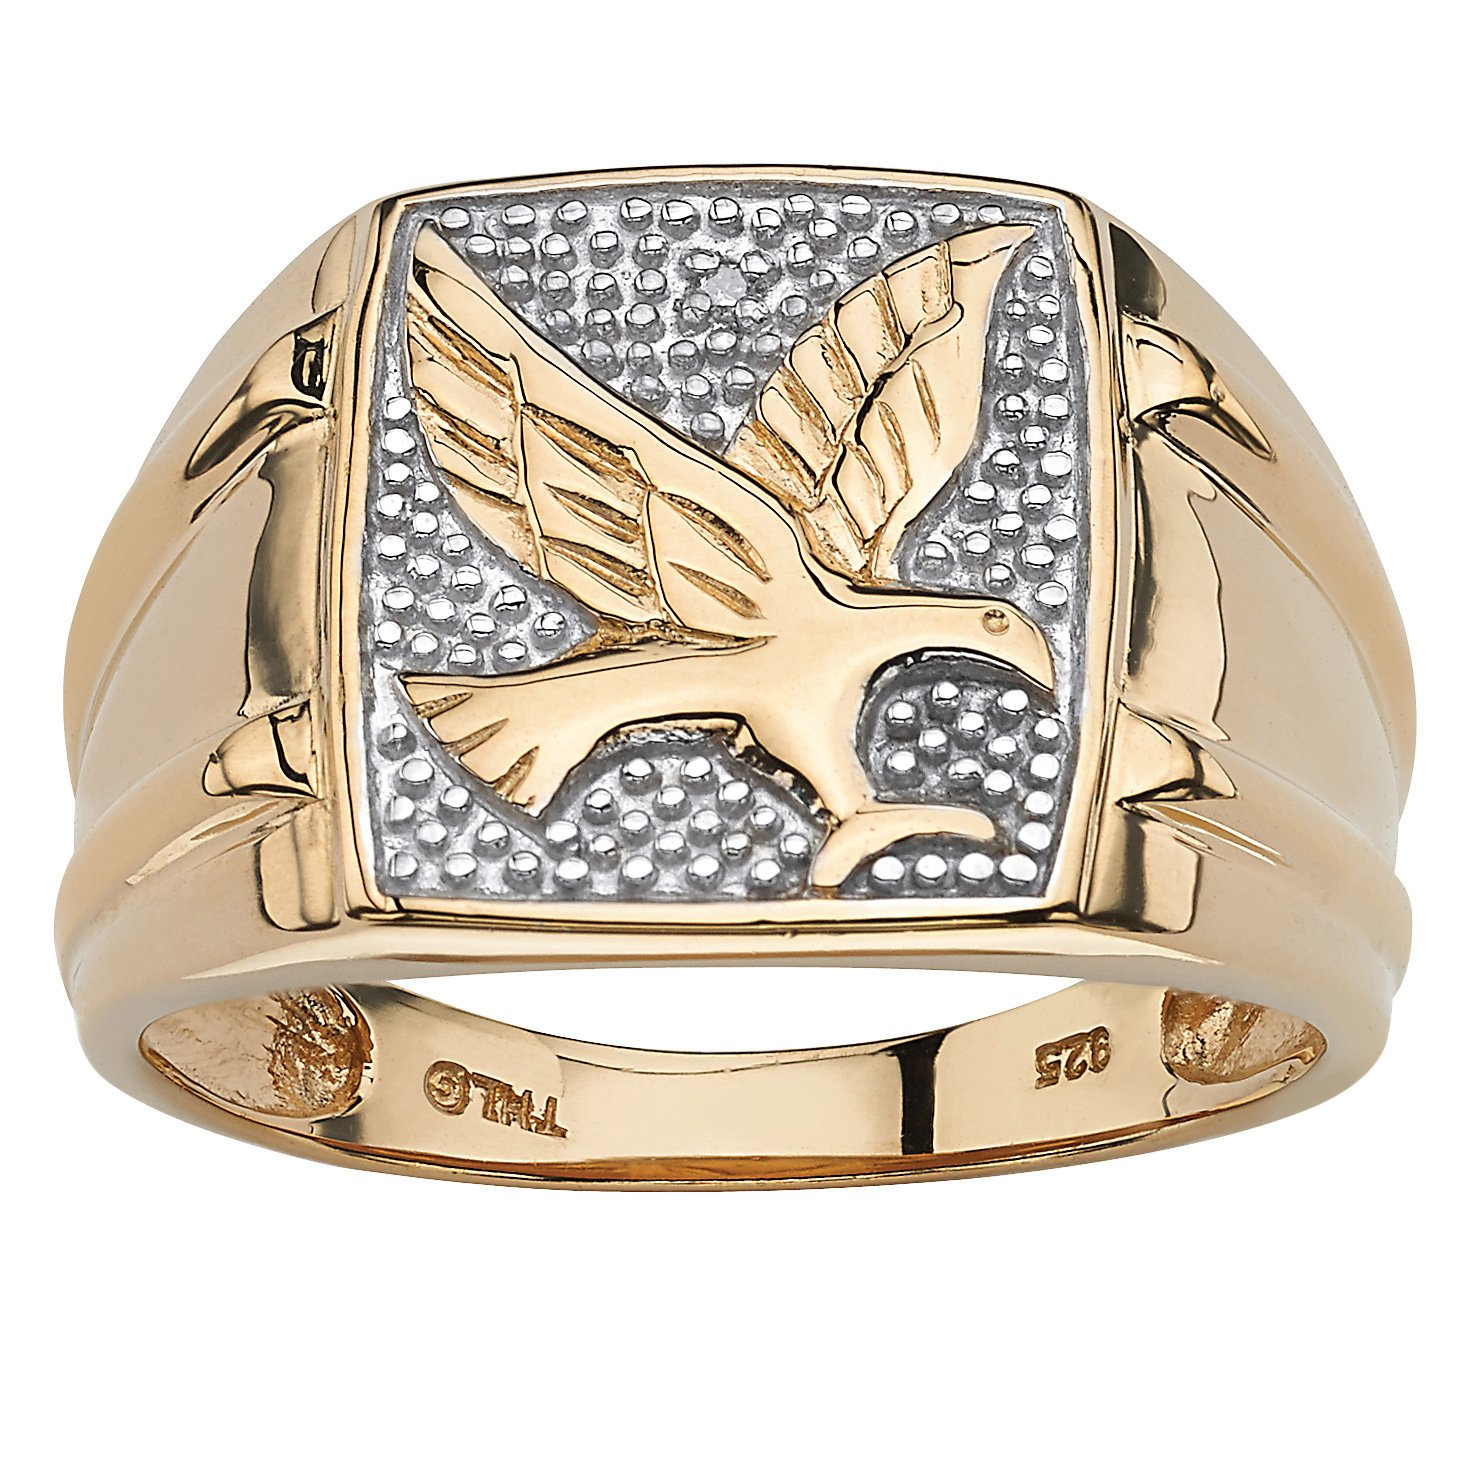 men round diamond gold over sterling silver eagle ring palmbeach mens accent tablet free shipping today fitted vinyl table covers victorian style side outdoor storage garden metal